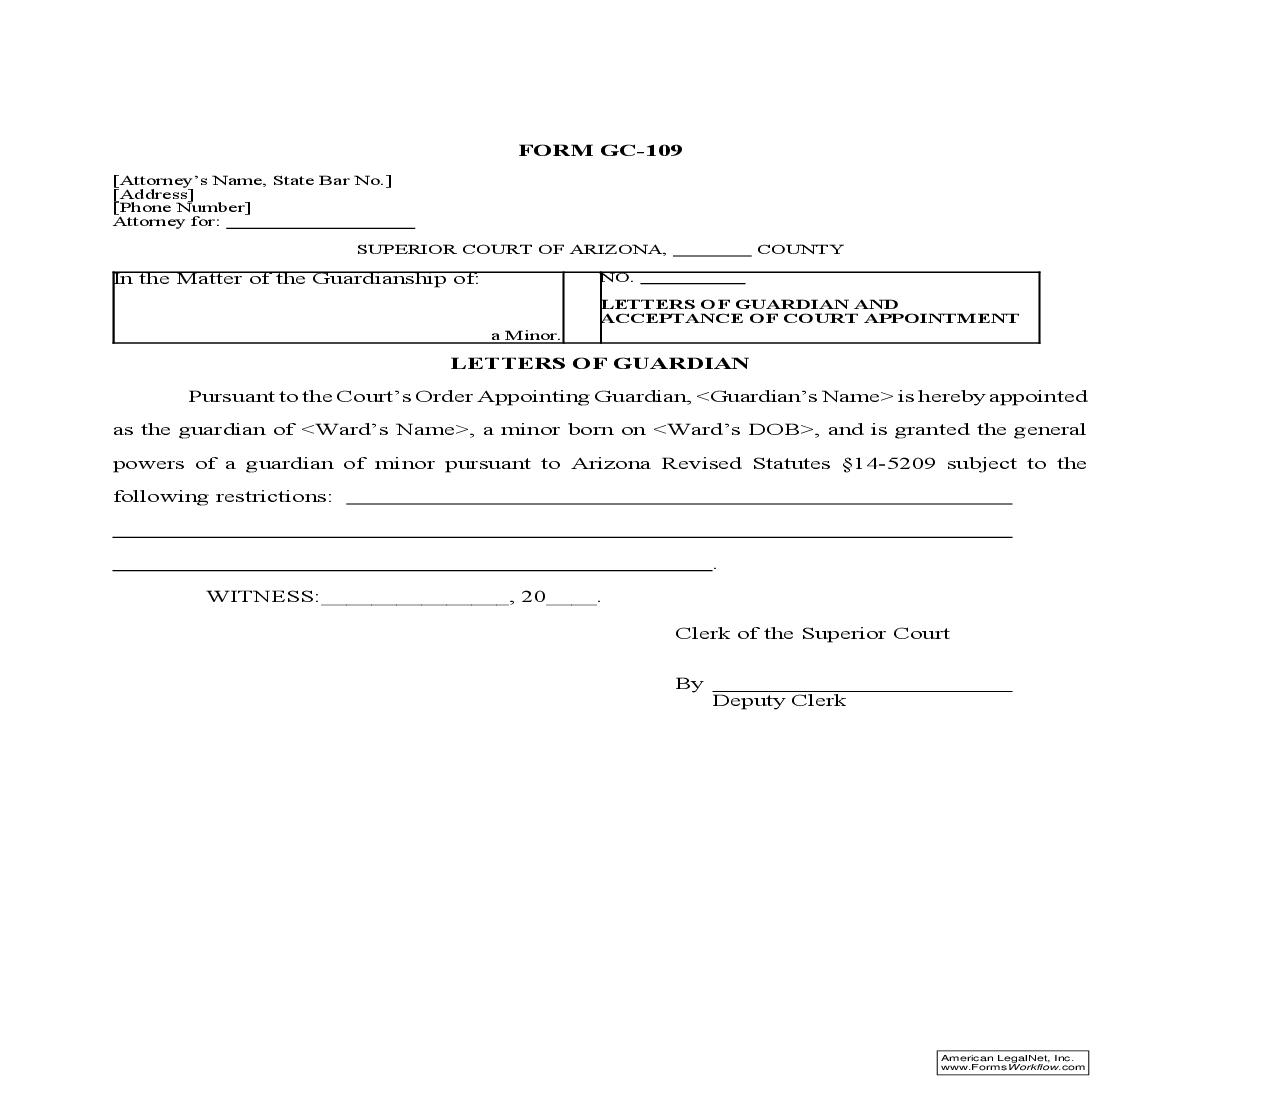 Letters Of Guardian And Acceptance Of Court Appointment (Minor) {GC-109} | Pdf Doc Docx | GTLaw